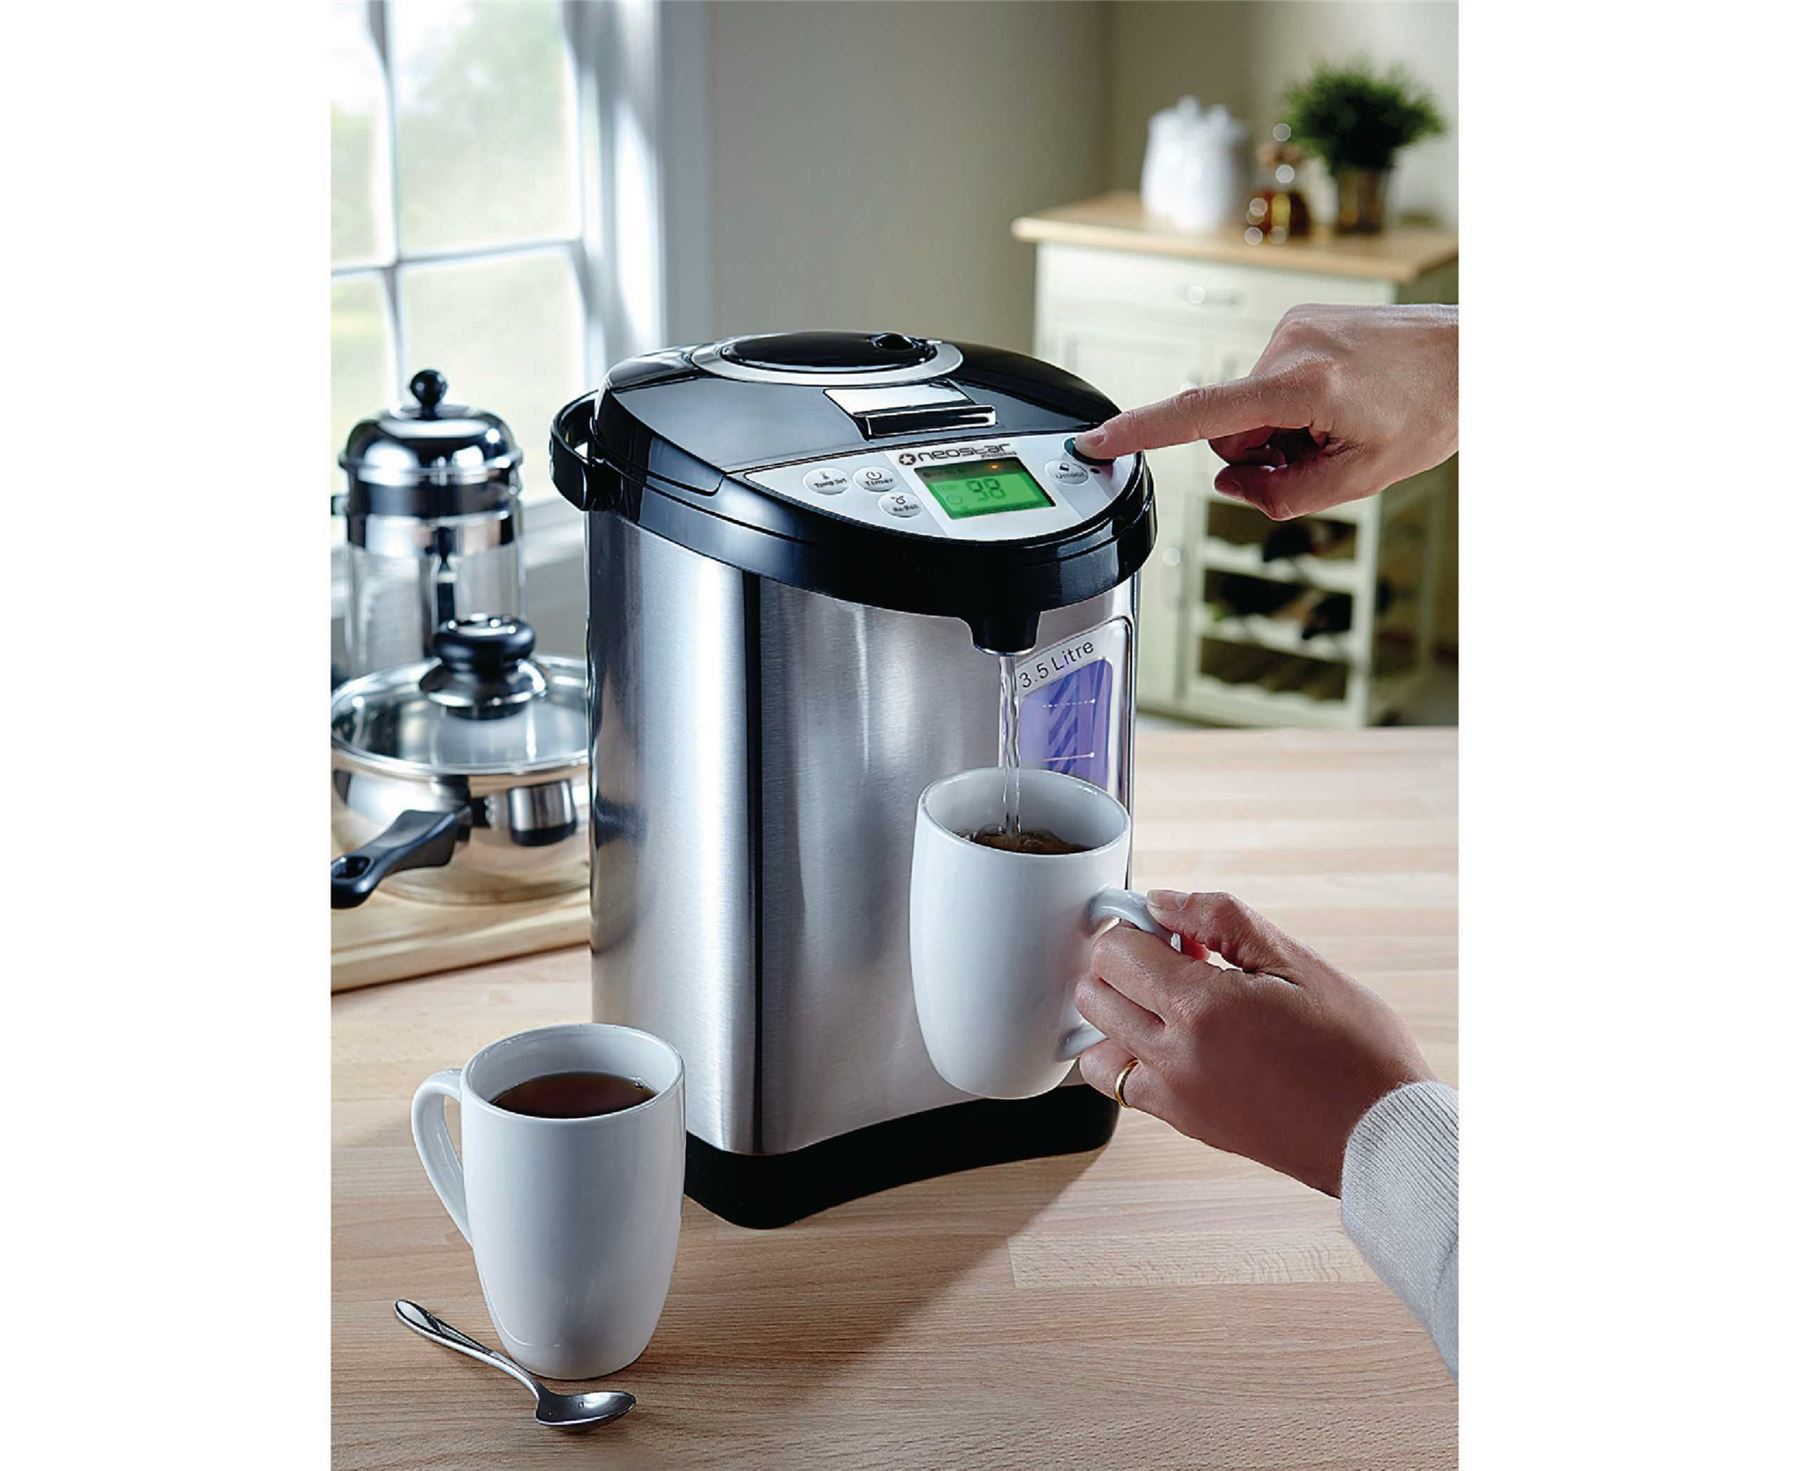 Hot Water Dispenser Kitchen : Neostar perma therm litre instant thermal hot water